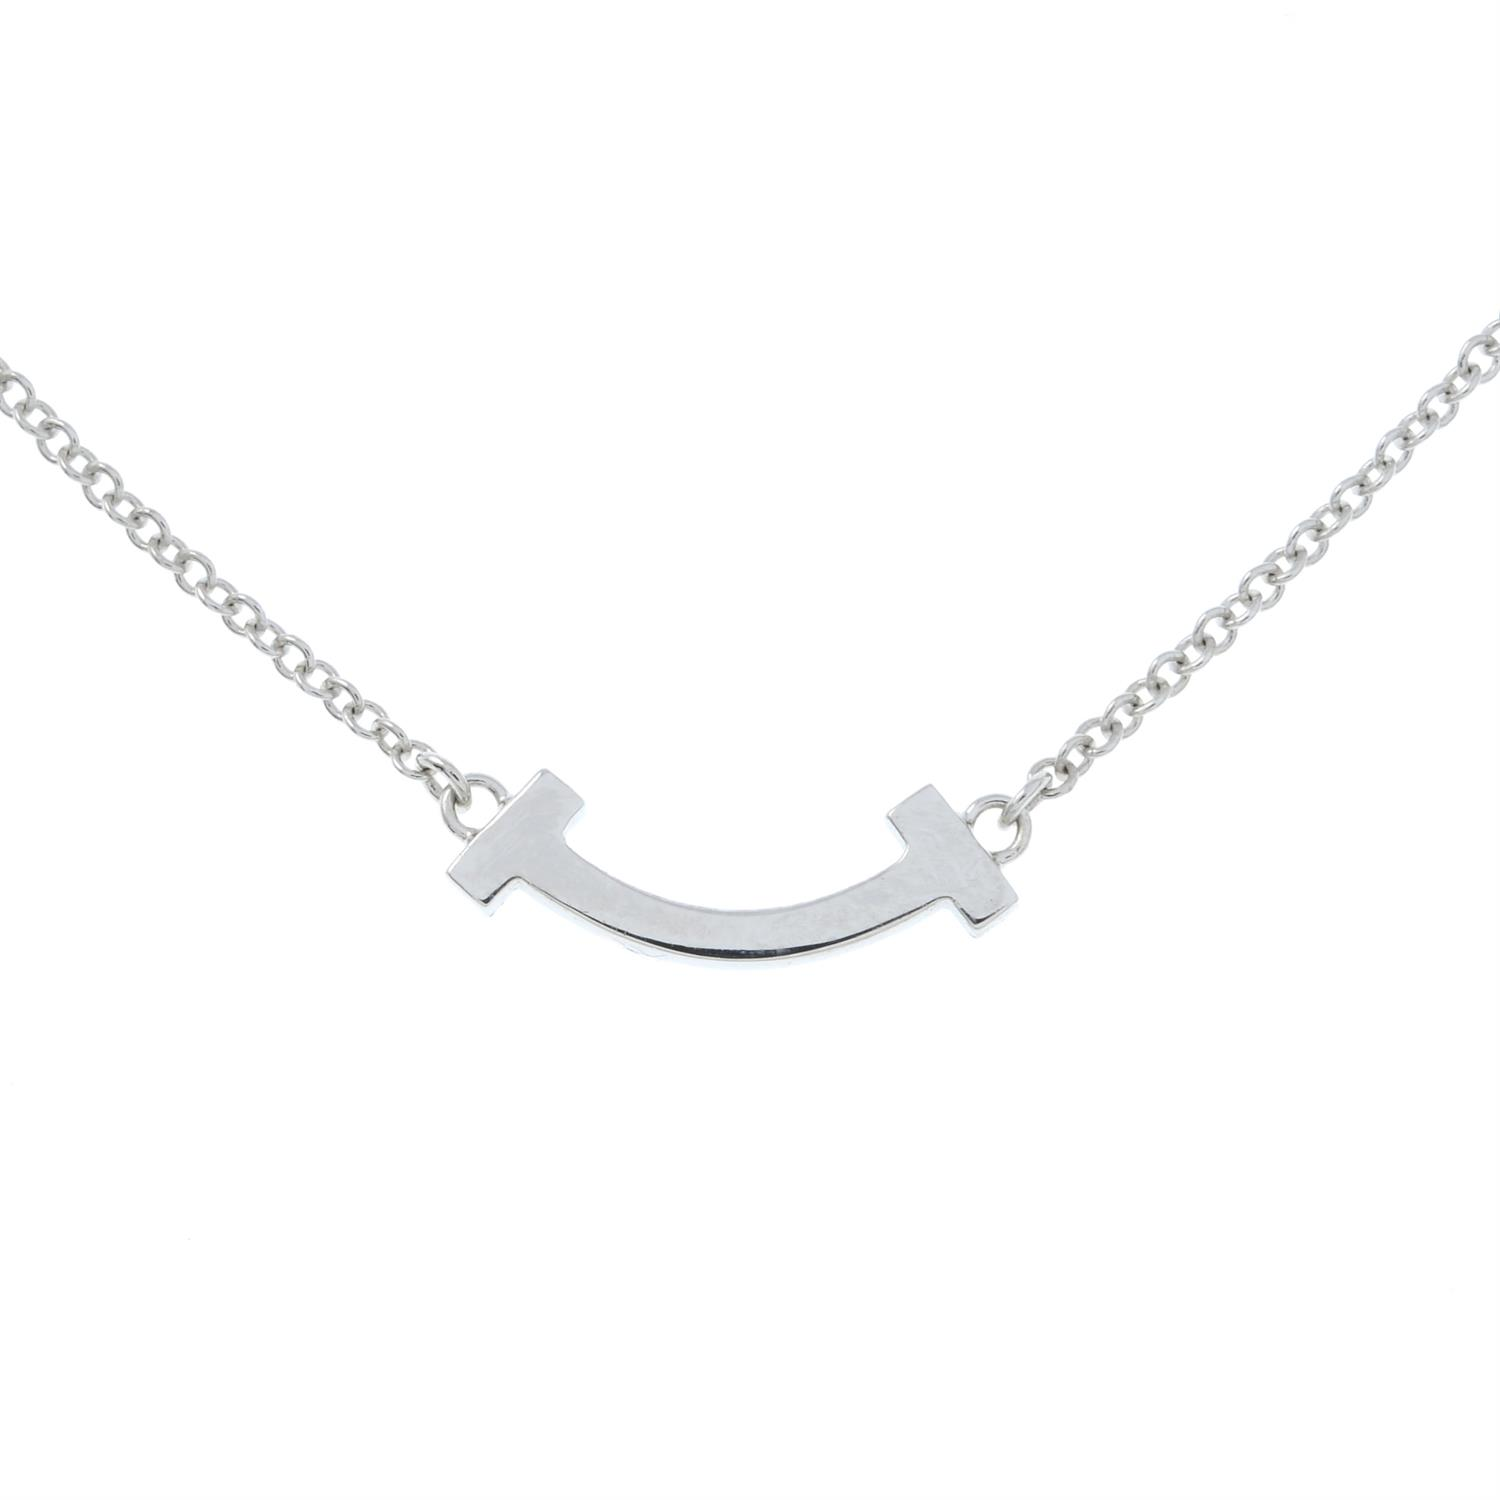 A diamond 'T Smile' pendant necklace, by Tiffany & Co. - Image 3 of 5